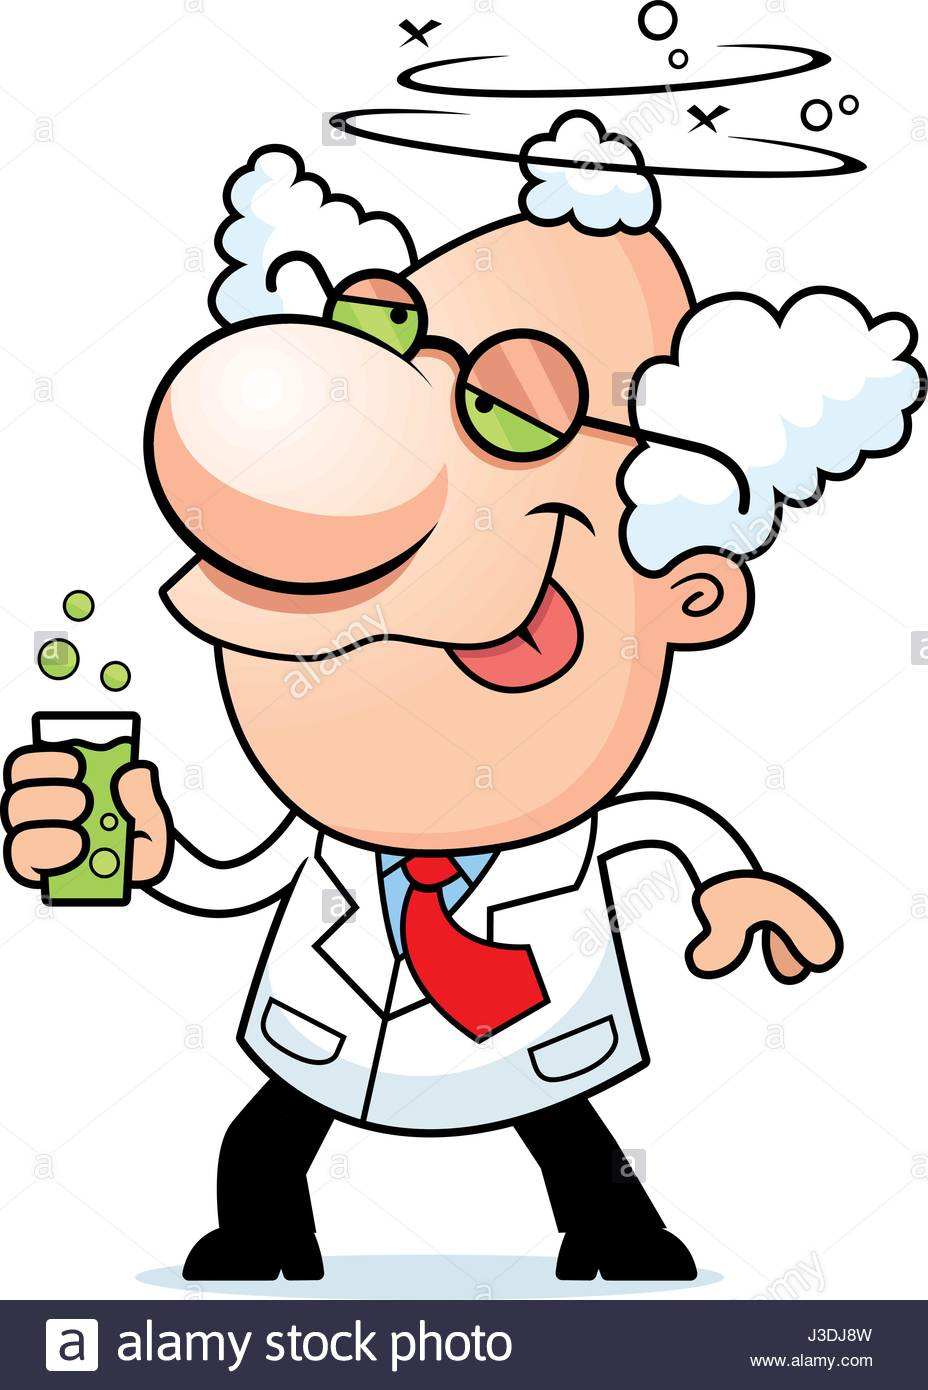 928x1390 An Illustration Of A Cartoon Mad Scientist Drinking A Bubbling